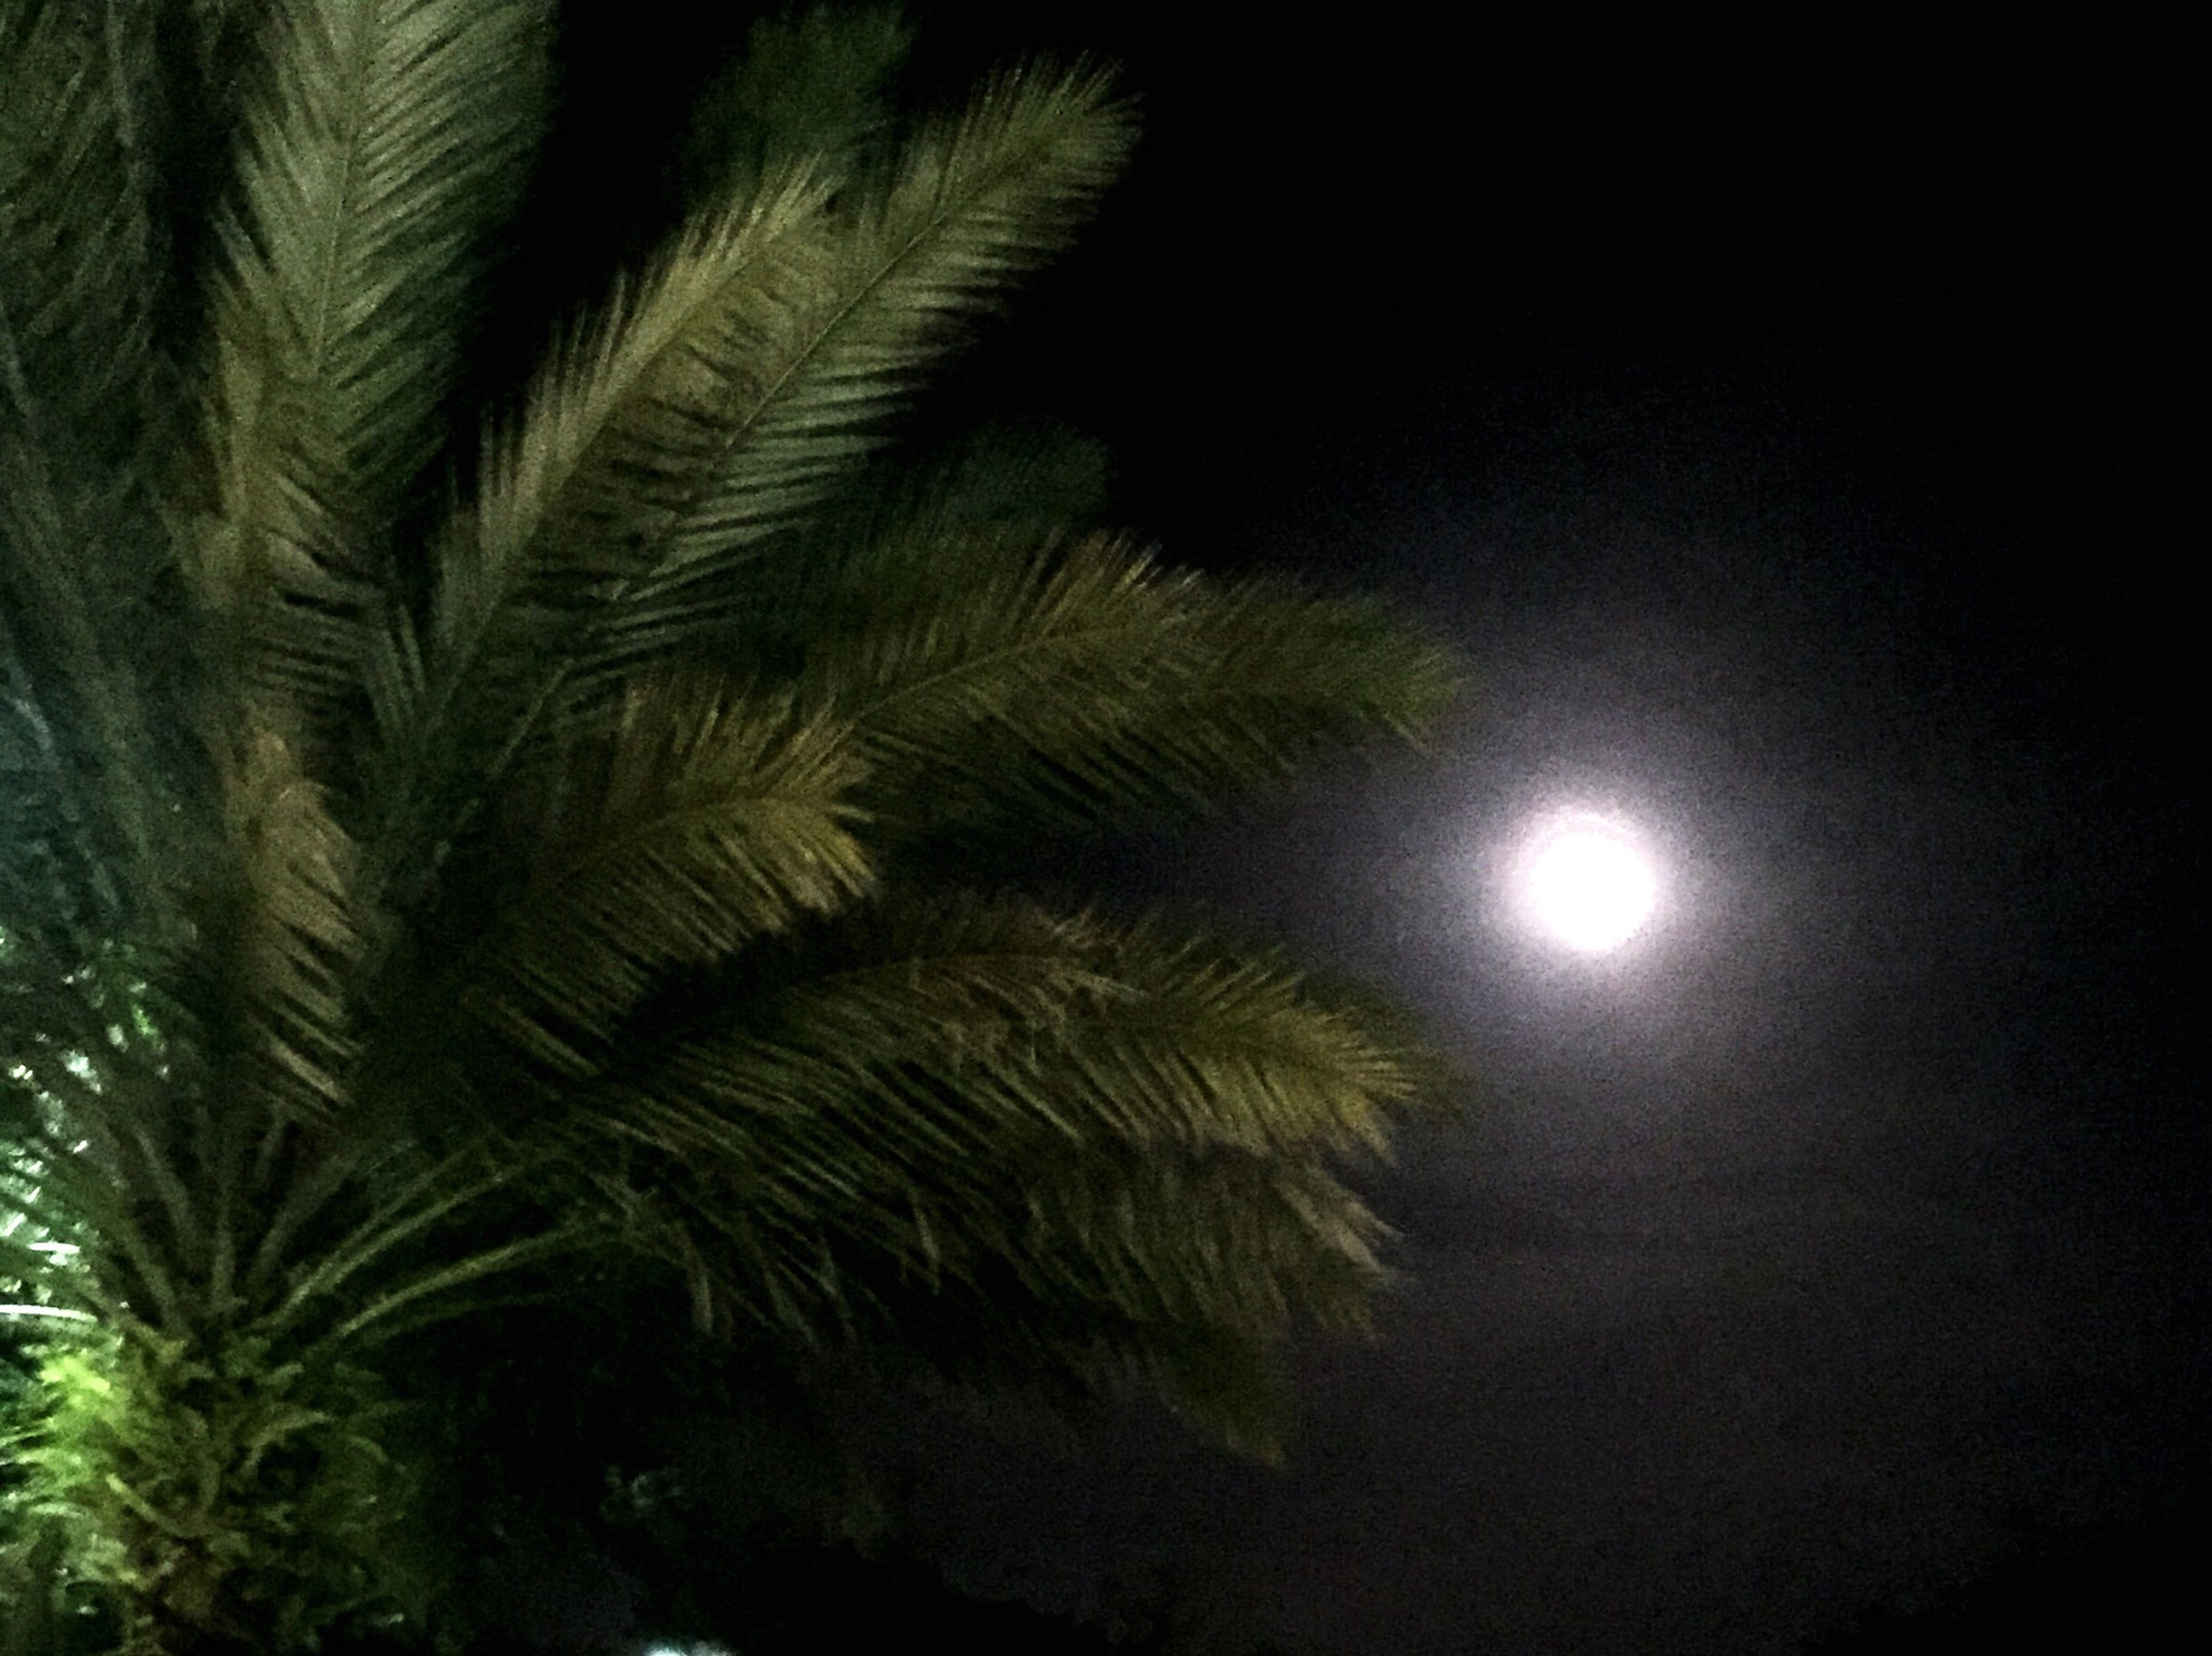 low angle view, night, sky, nature, growth, tree, beauty in nature, palm tree, tranquility, moon, sun, outdoors, illuminated, no people, glowing, silhouette, scenics, branch, full moon, tranquil scene